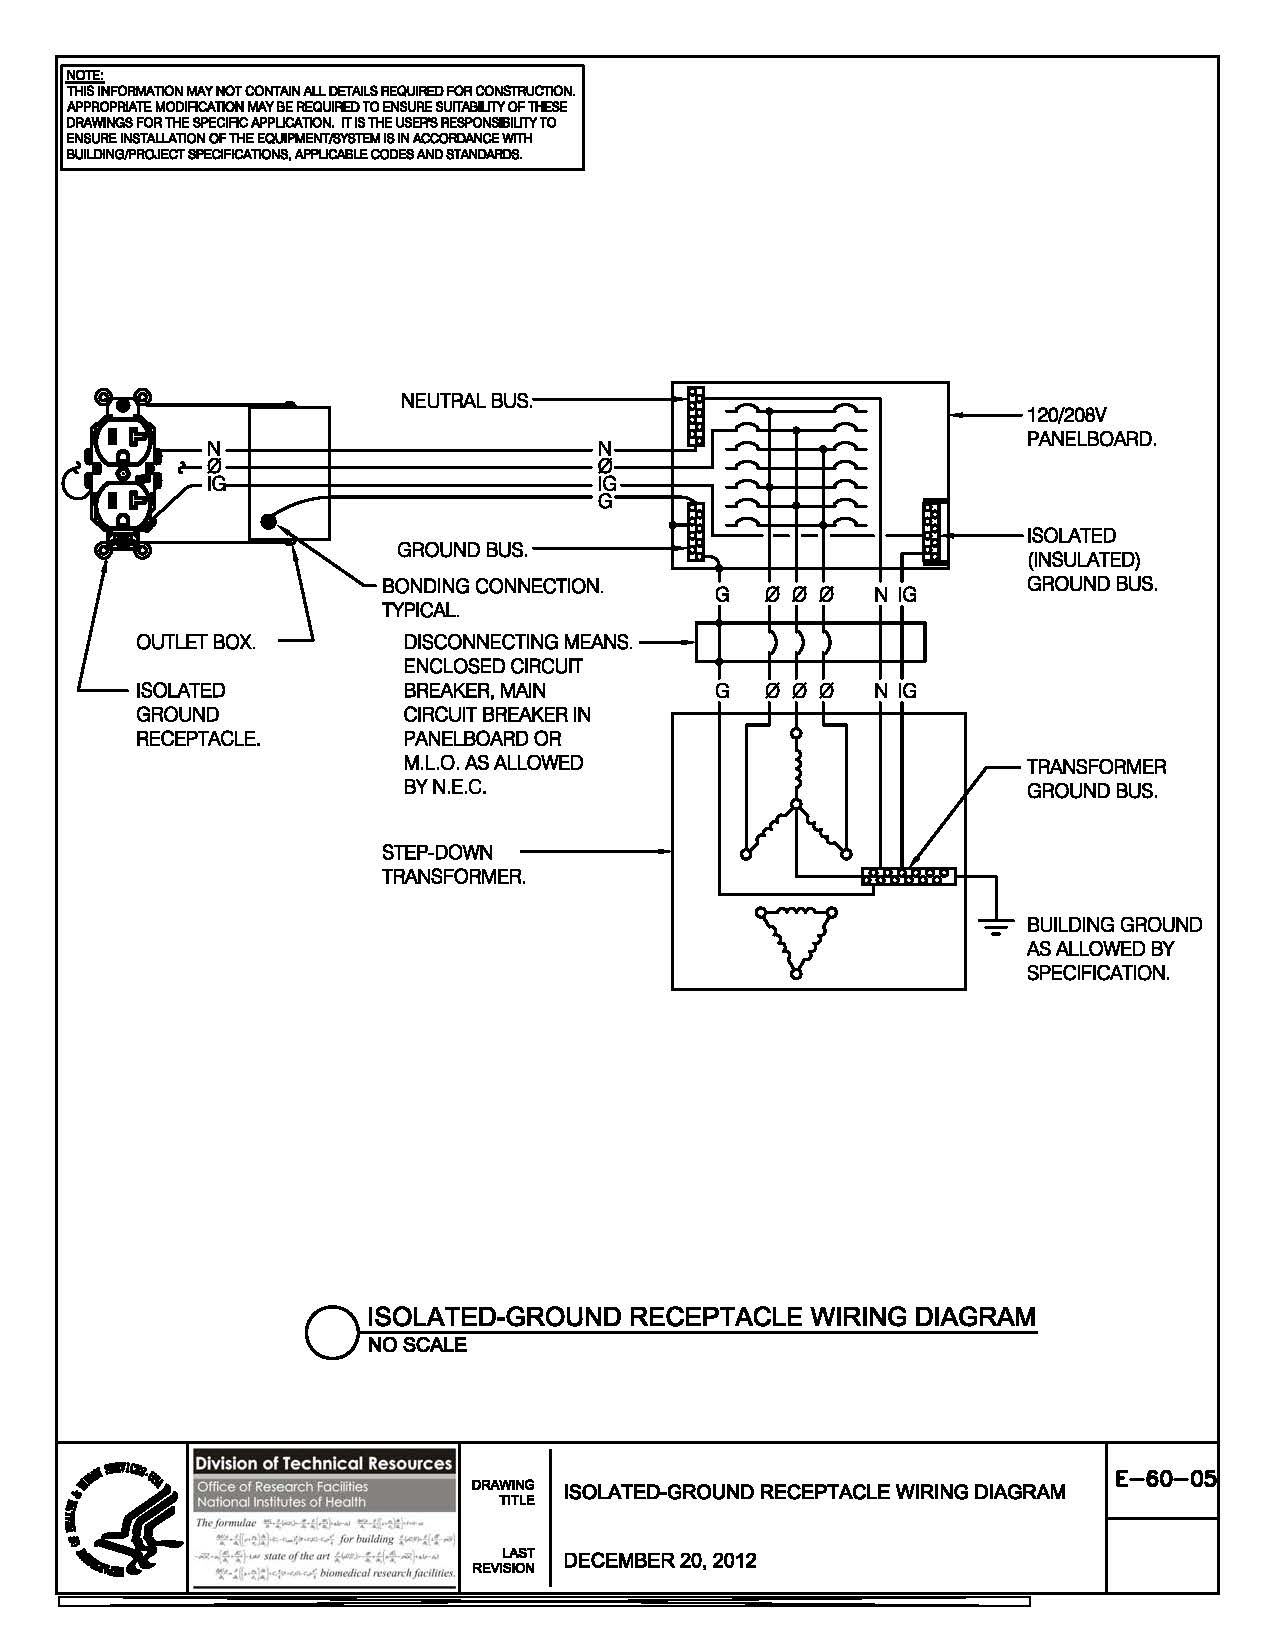 safety mat wiring diagram Download-Safety Mat Wiring Diagram Best Nih Standard Cad Details 17-n